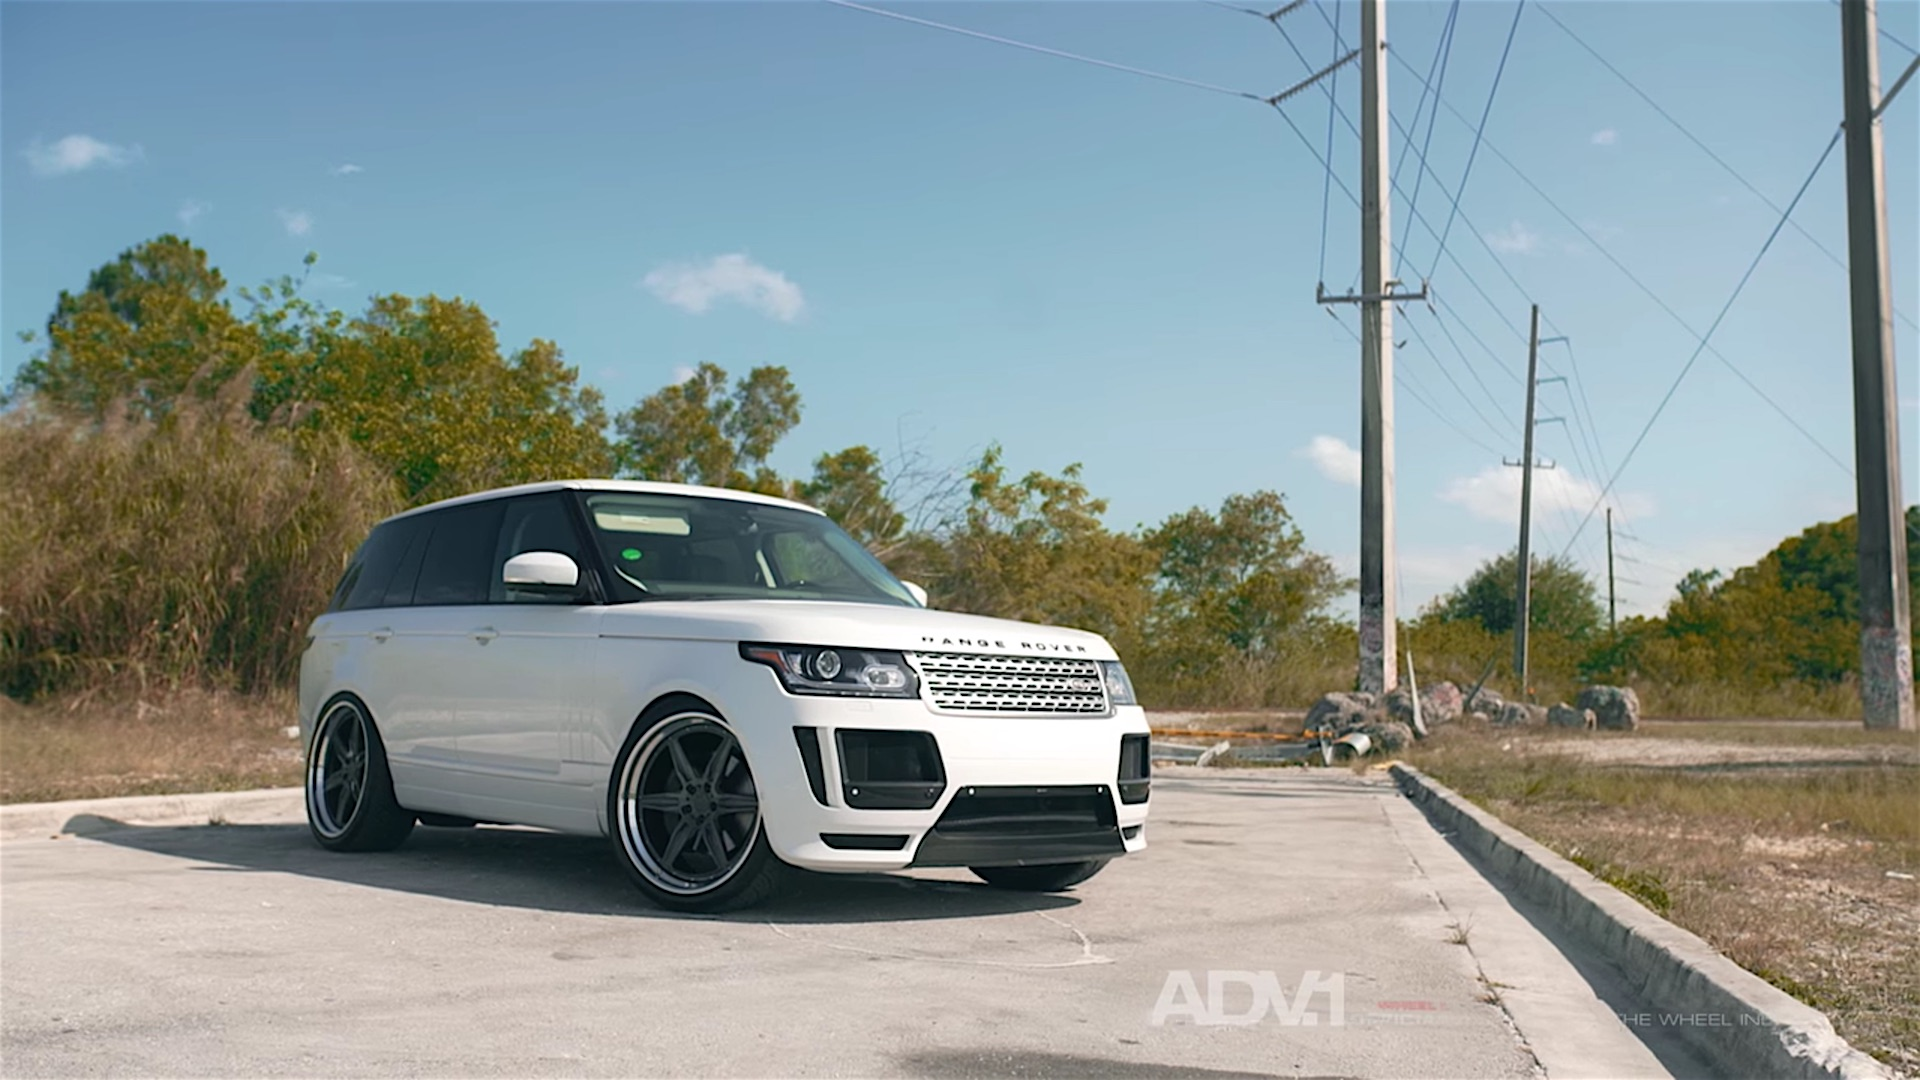 Vorsteiner Range Rover By ADV1 Wheels - 8